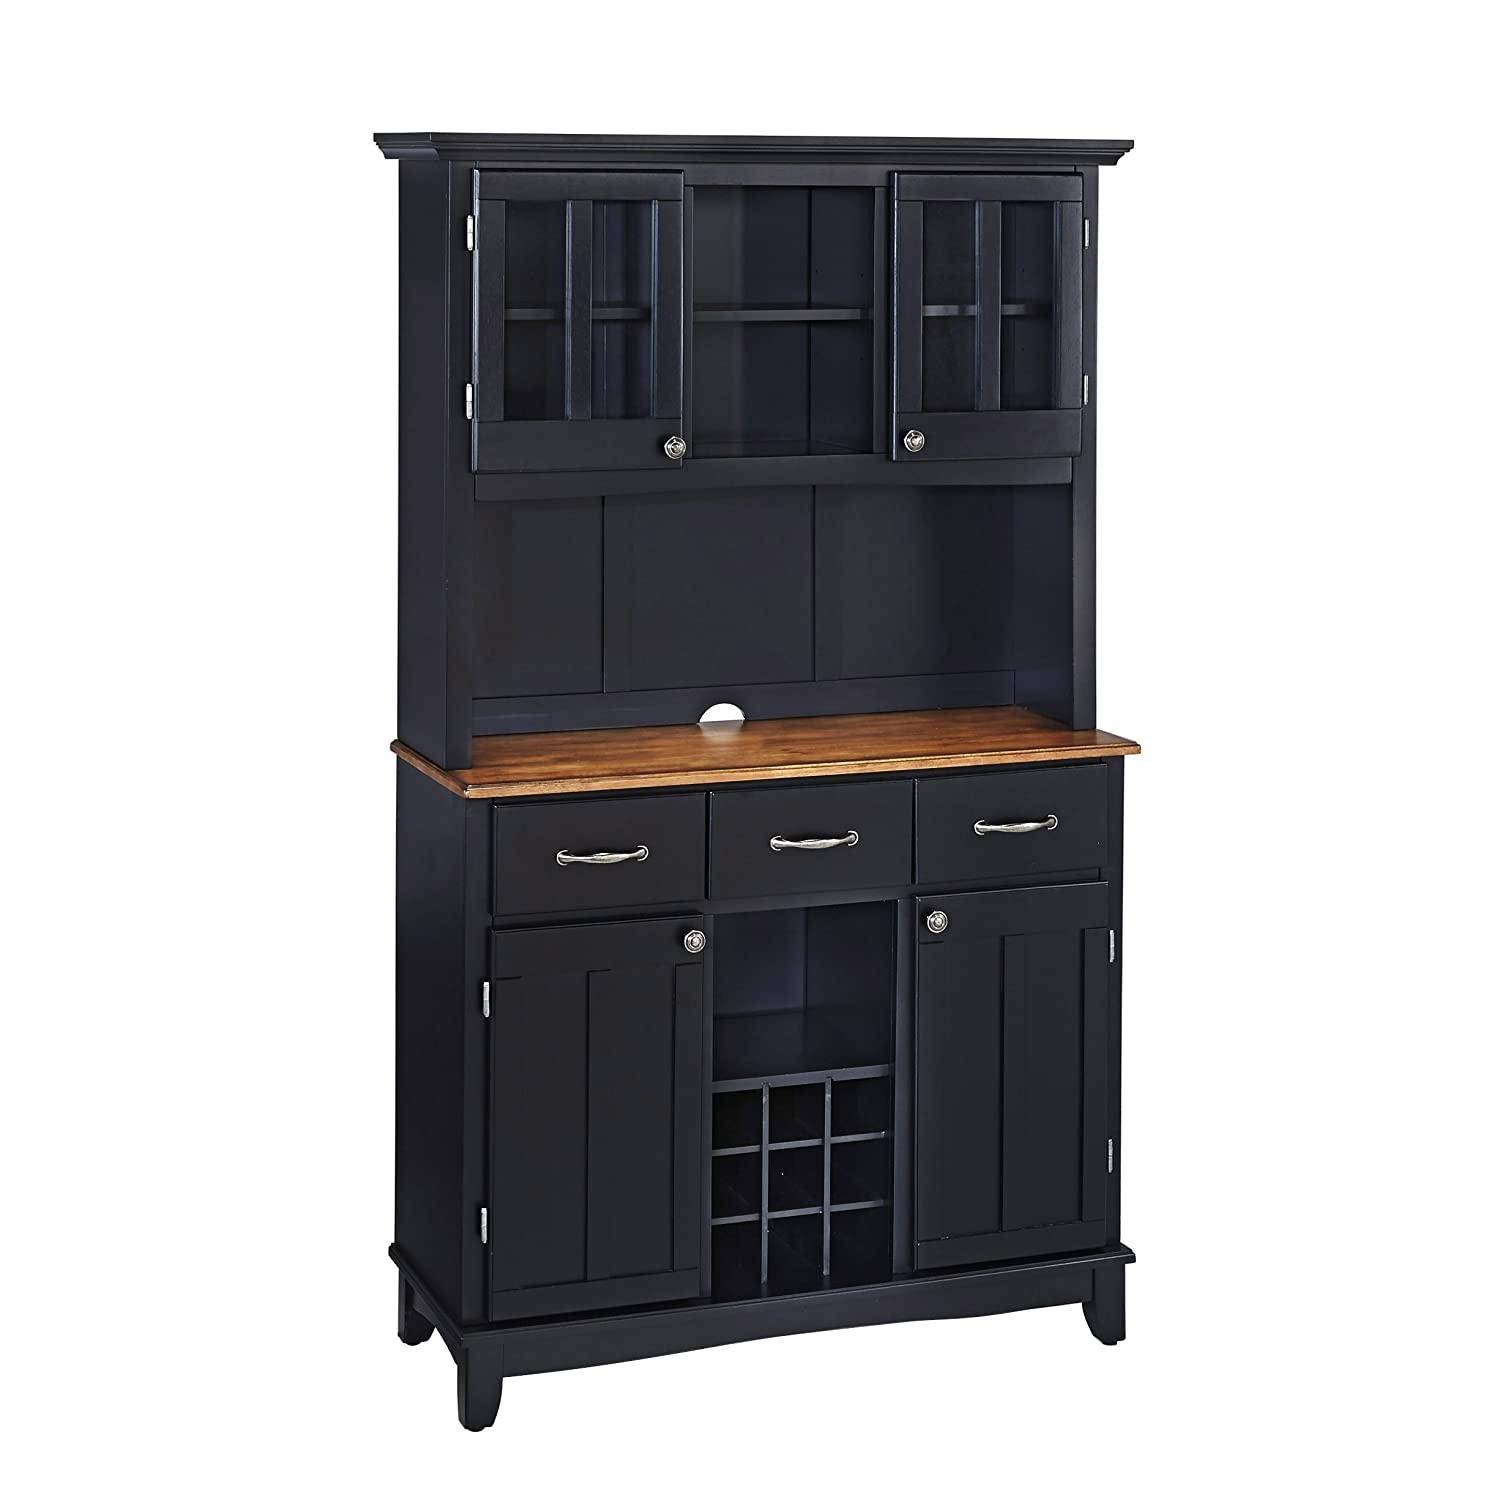 stunning photos buffet new full design com sideboard lovely dining of size room kitchen server black hutch large